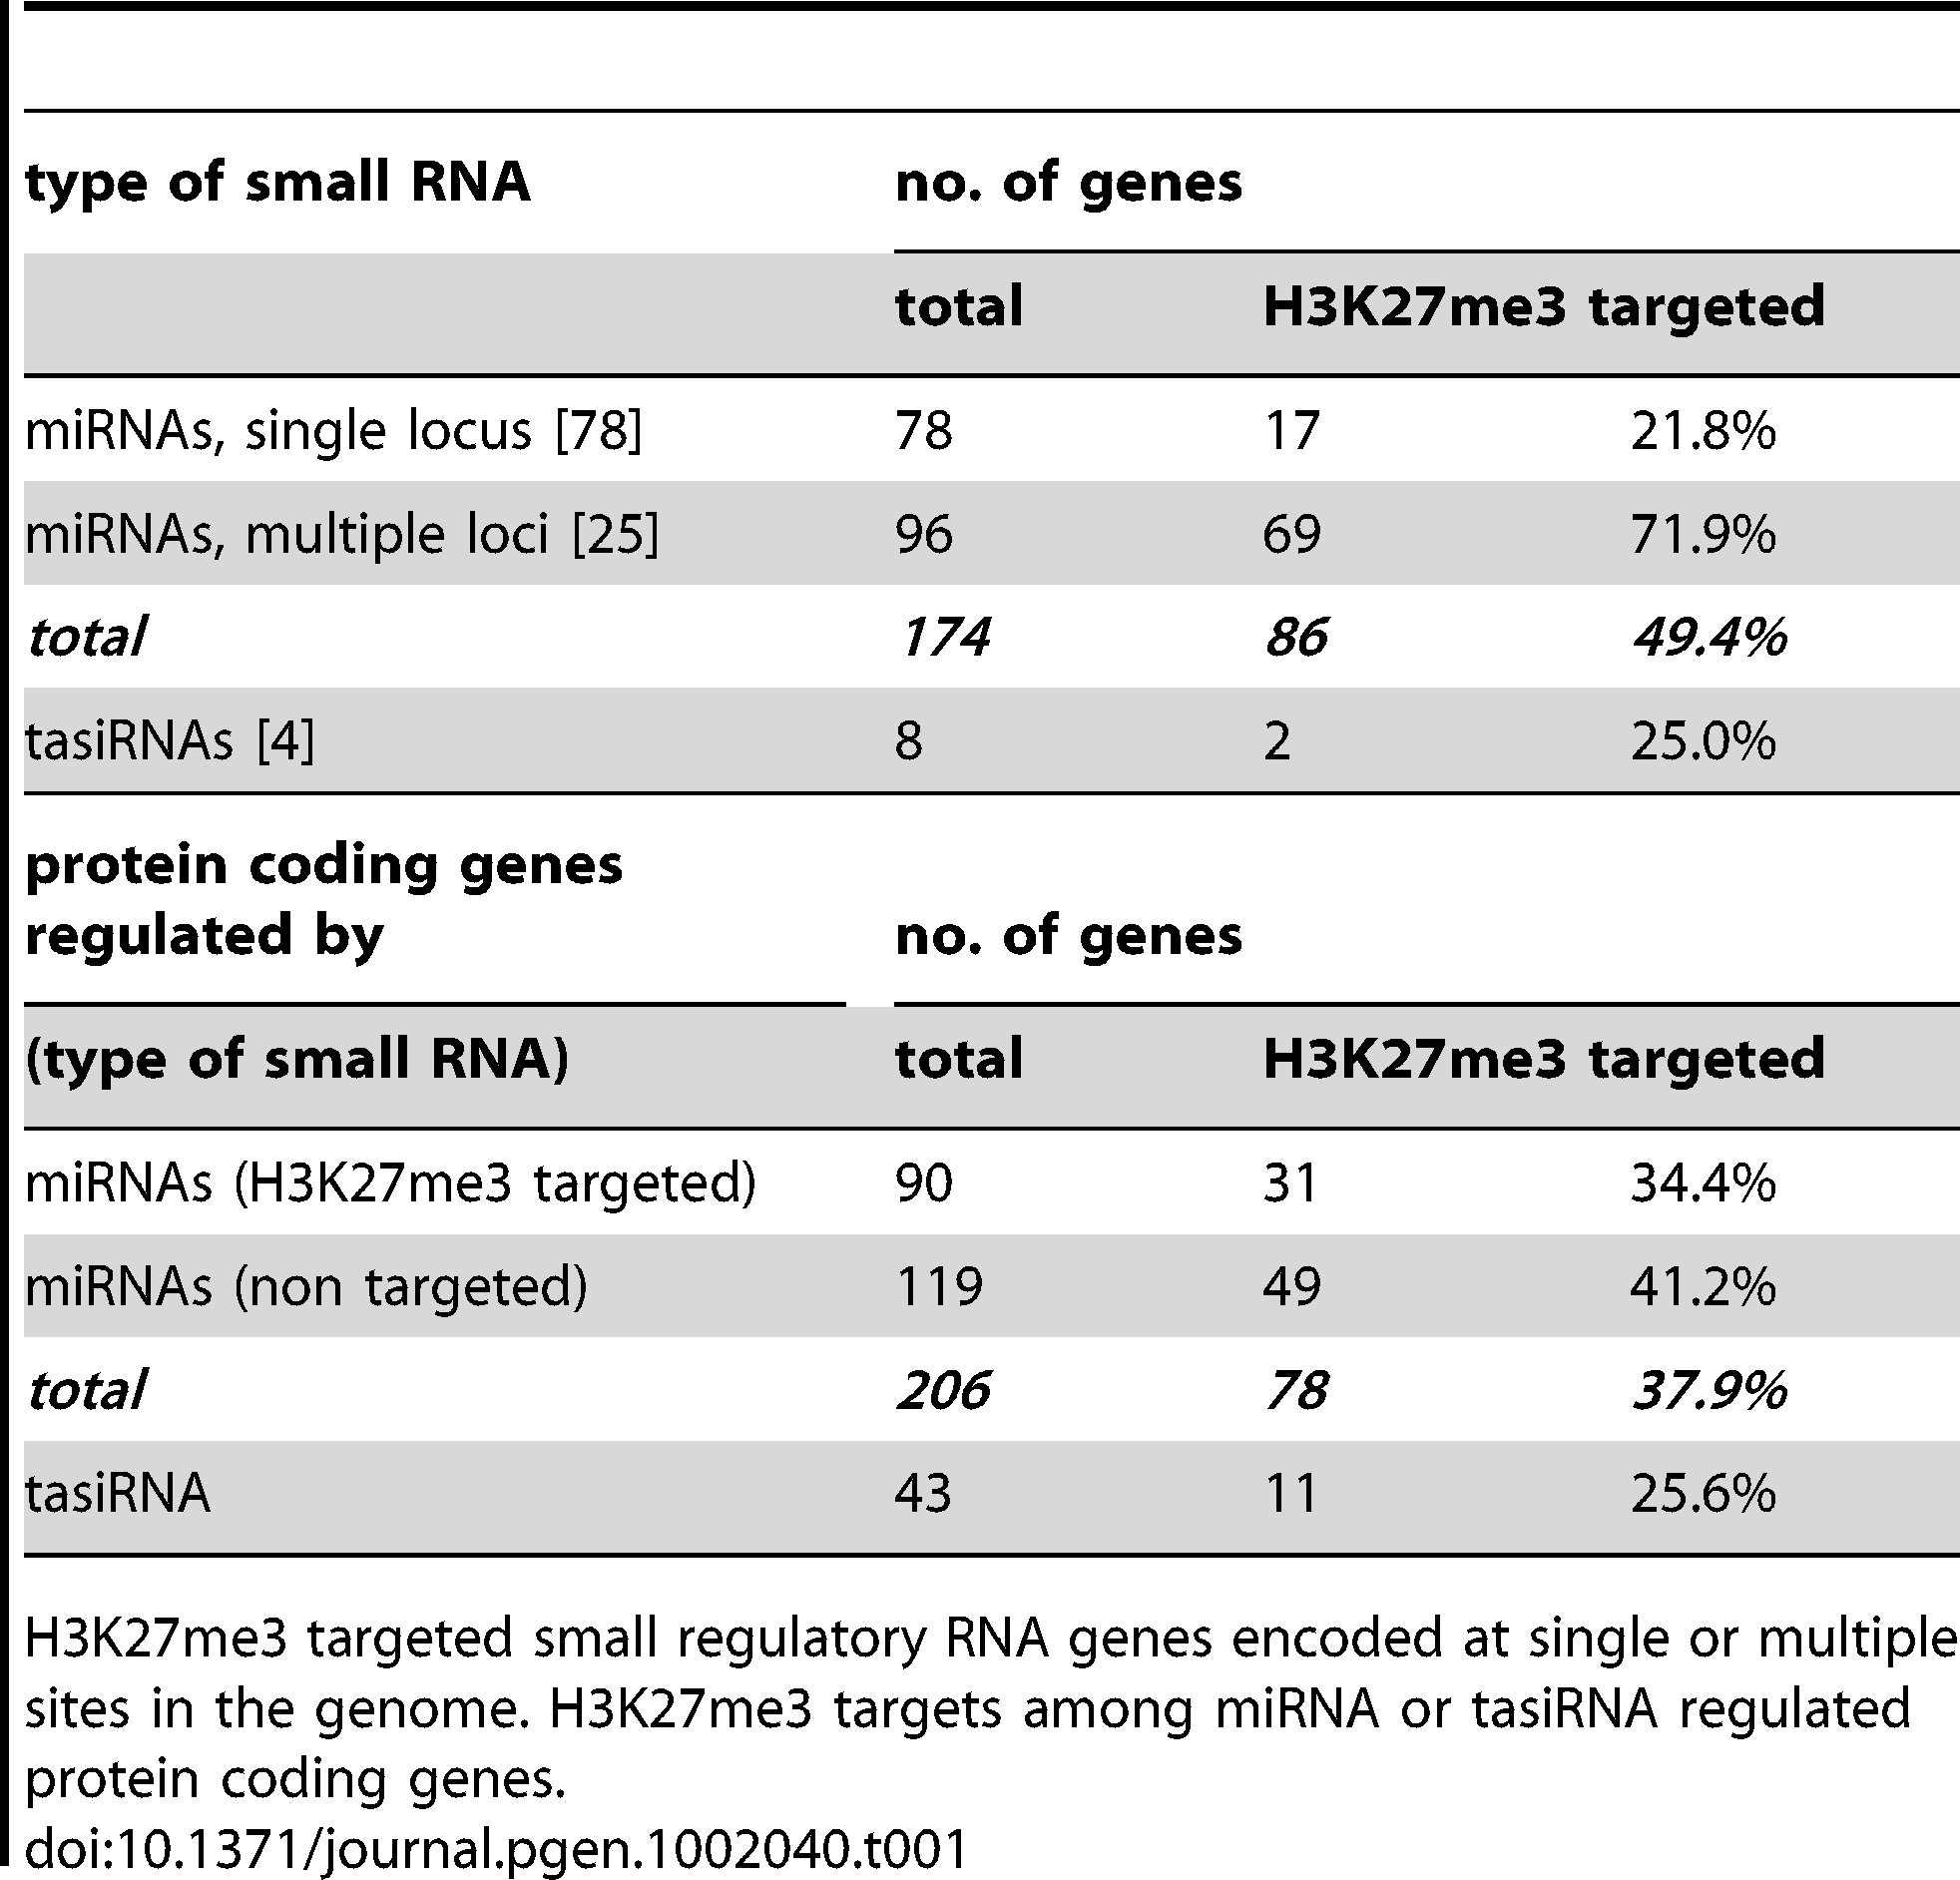 Regulation of miRNA and tasiRNA genes and their targets by H3K27me3.